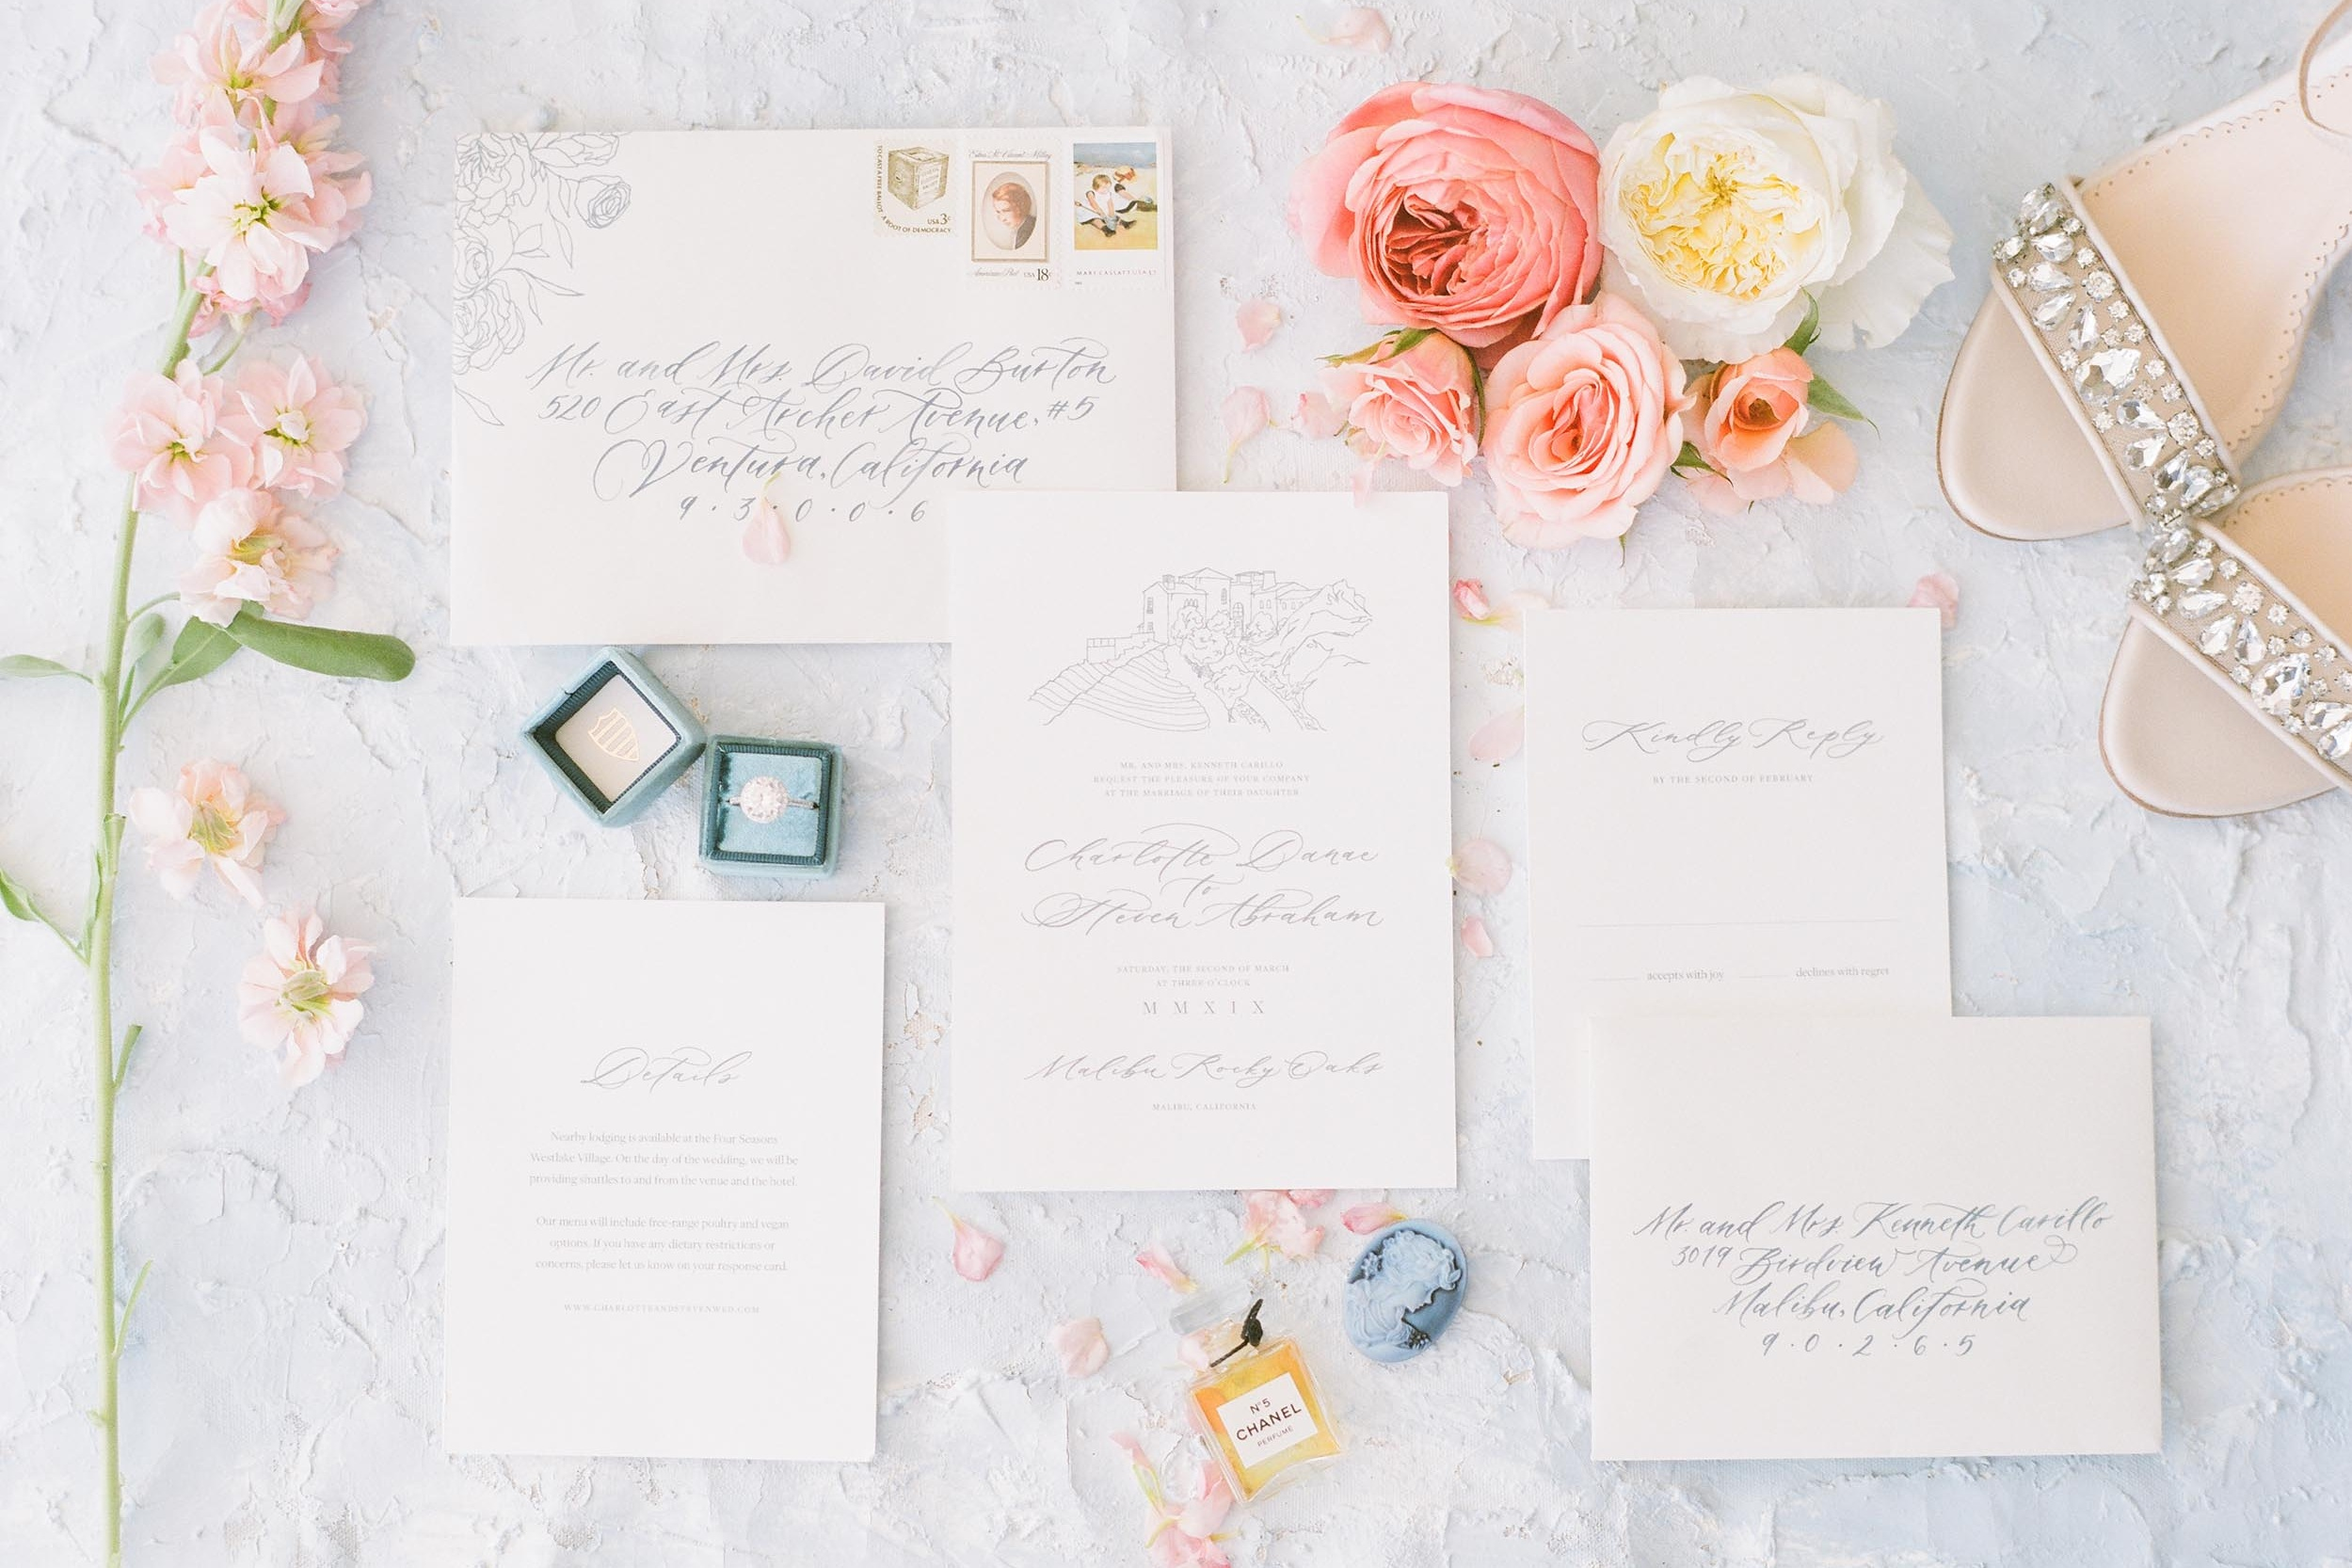 Bespoke wedding invitations by Caitlin O'Bryant Design. Elegant and delicate custom stationery with organic and romantic touches. Photo by Julie Paisley. Host: Styled Shoots Across America